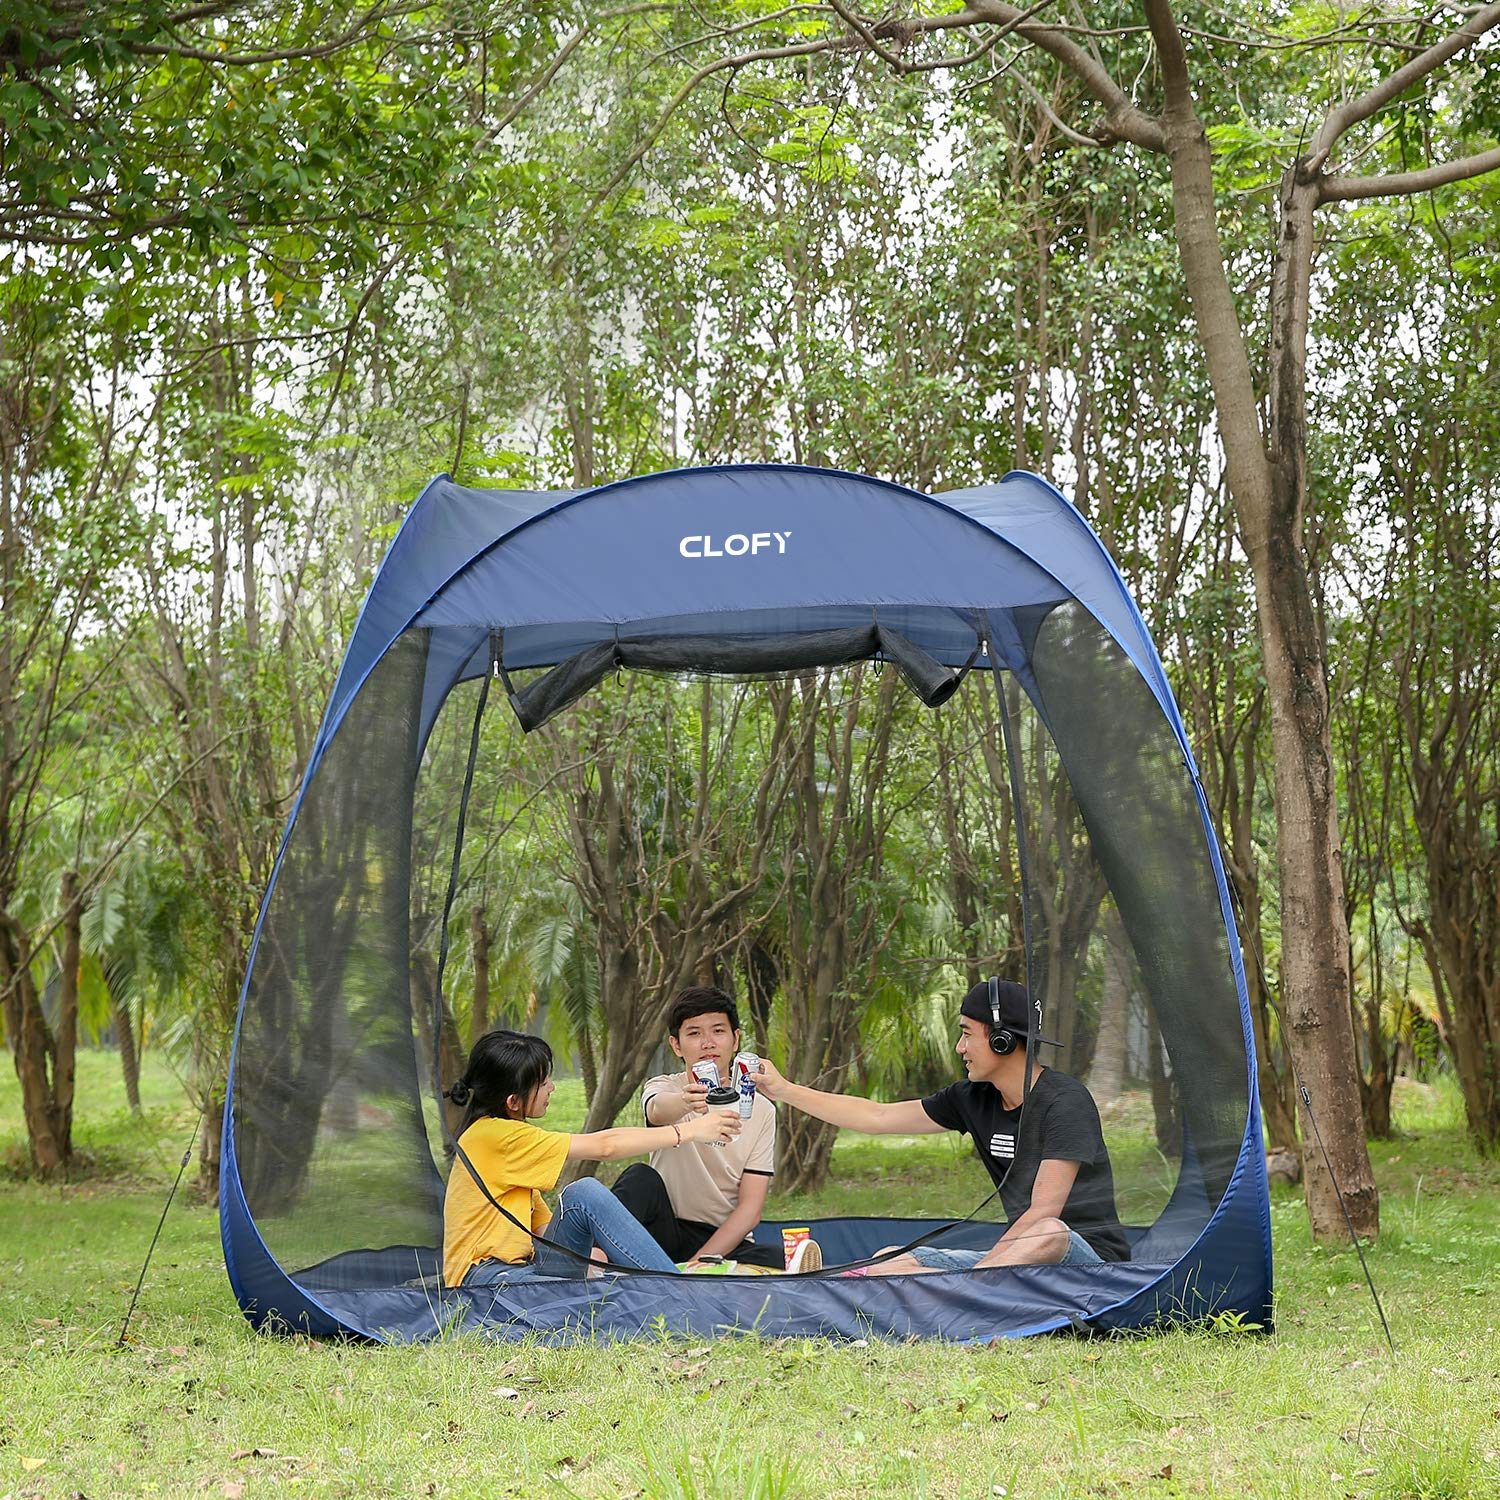 CLOFY Screen Tent with Floor|Easy Pop Up Screen House|Instant Portable Screen House| 360° Screen Room/Canopy Tent for Camping or Family Reunions by CLOFY